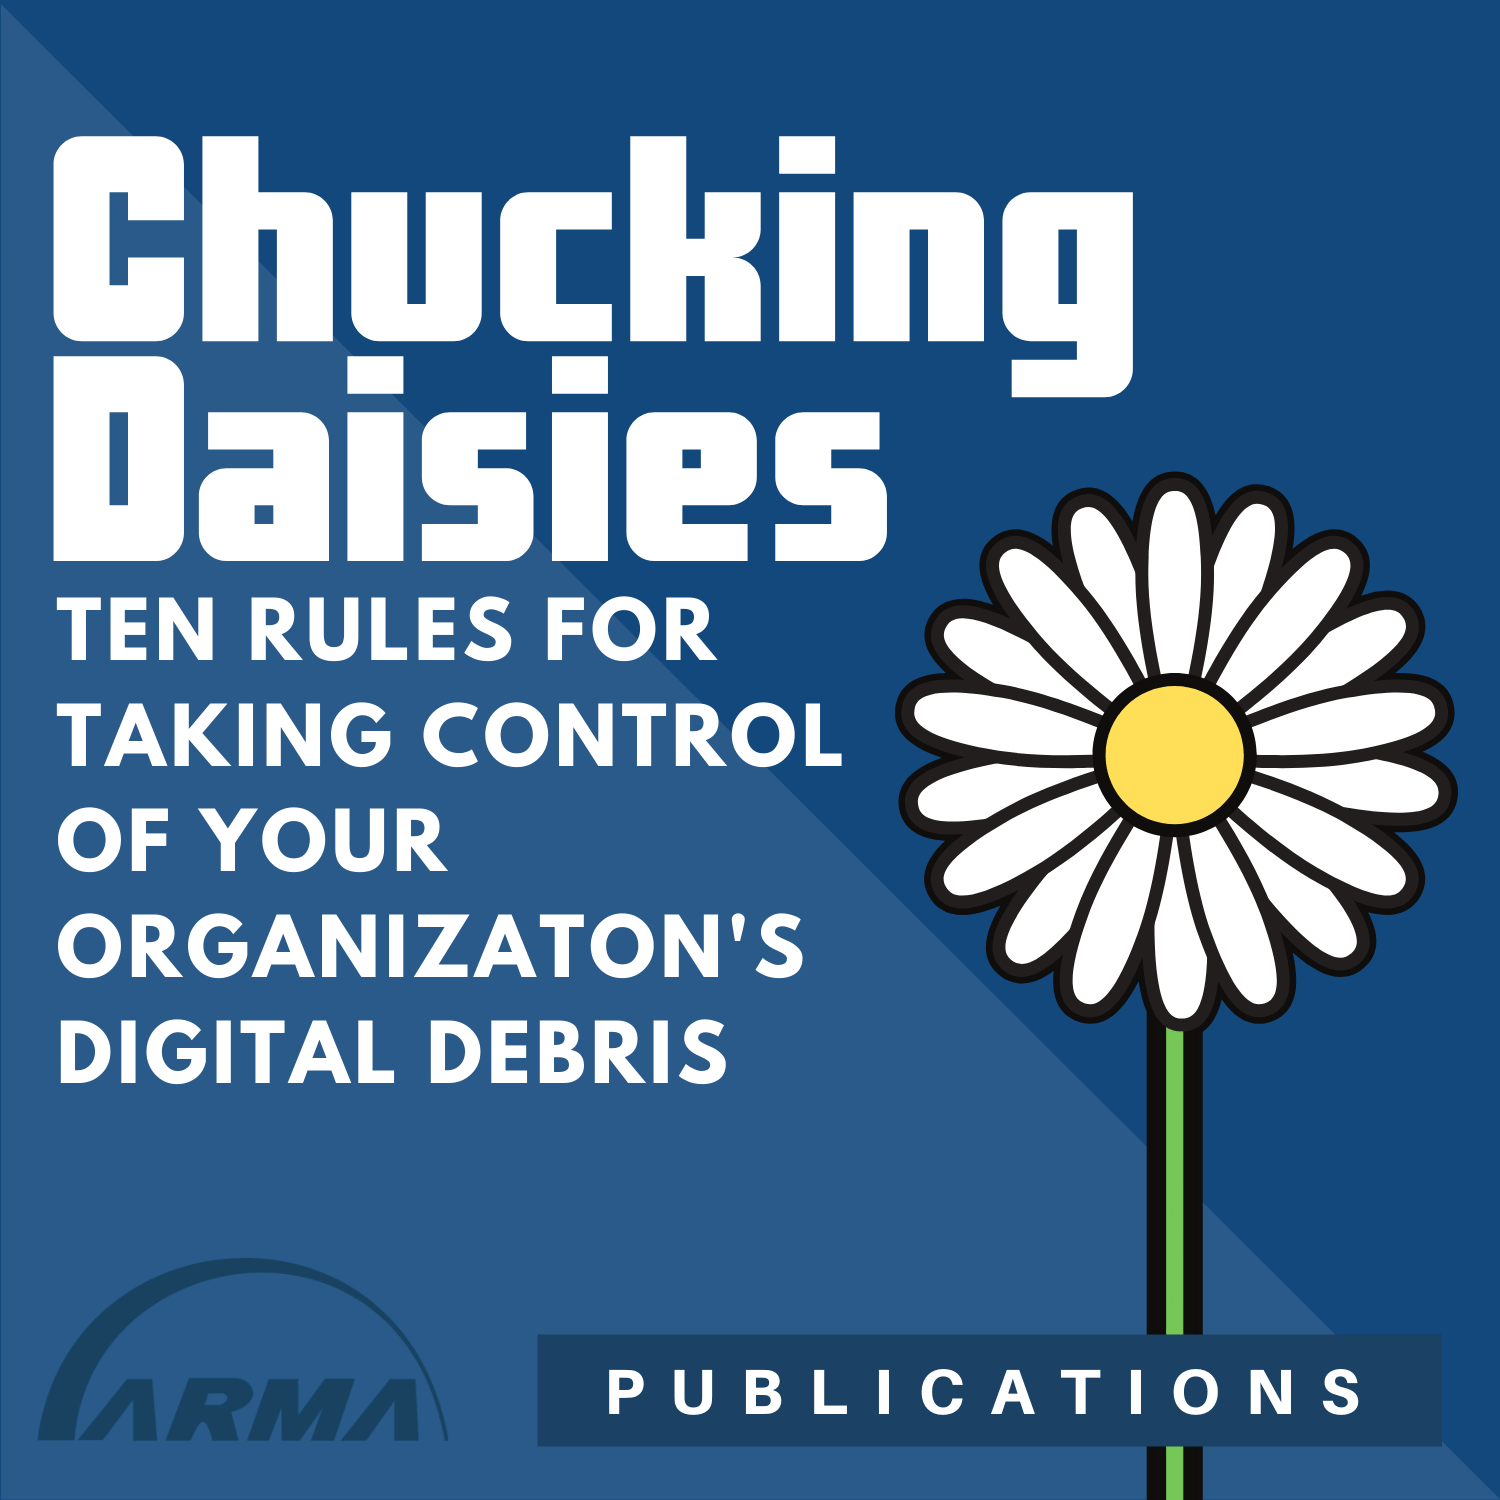 Chucking Daisies: 10 Rules for Taking Control of your Organization's Data Debris